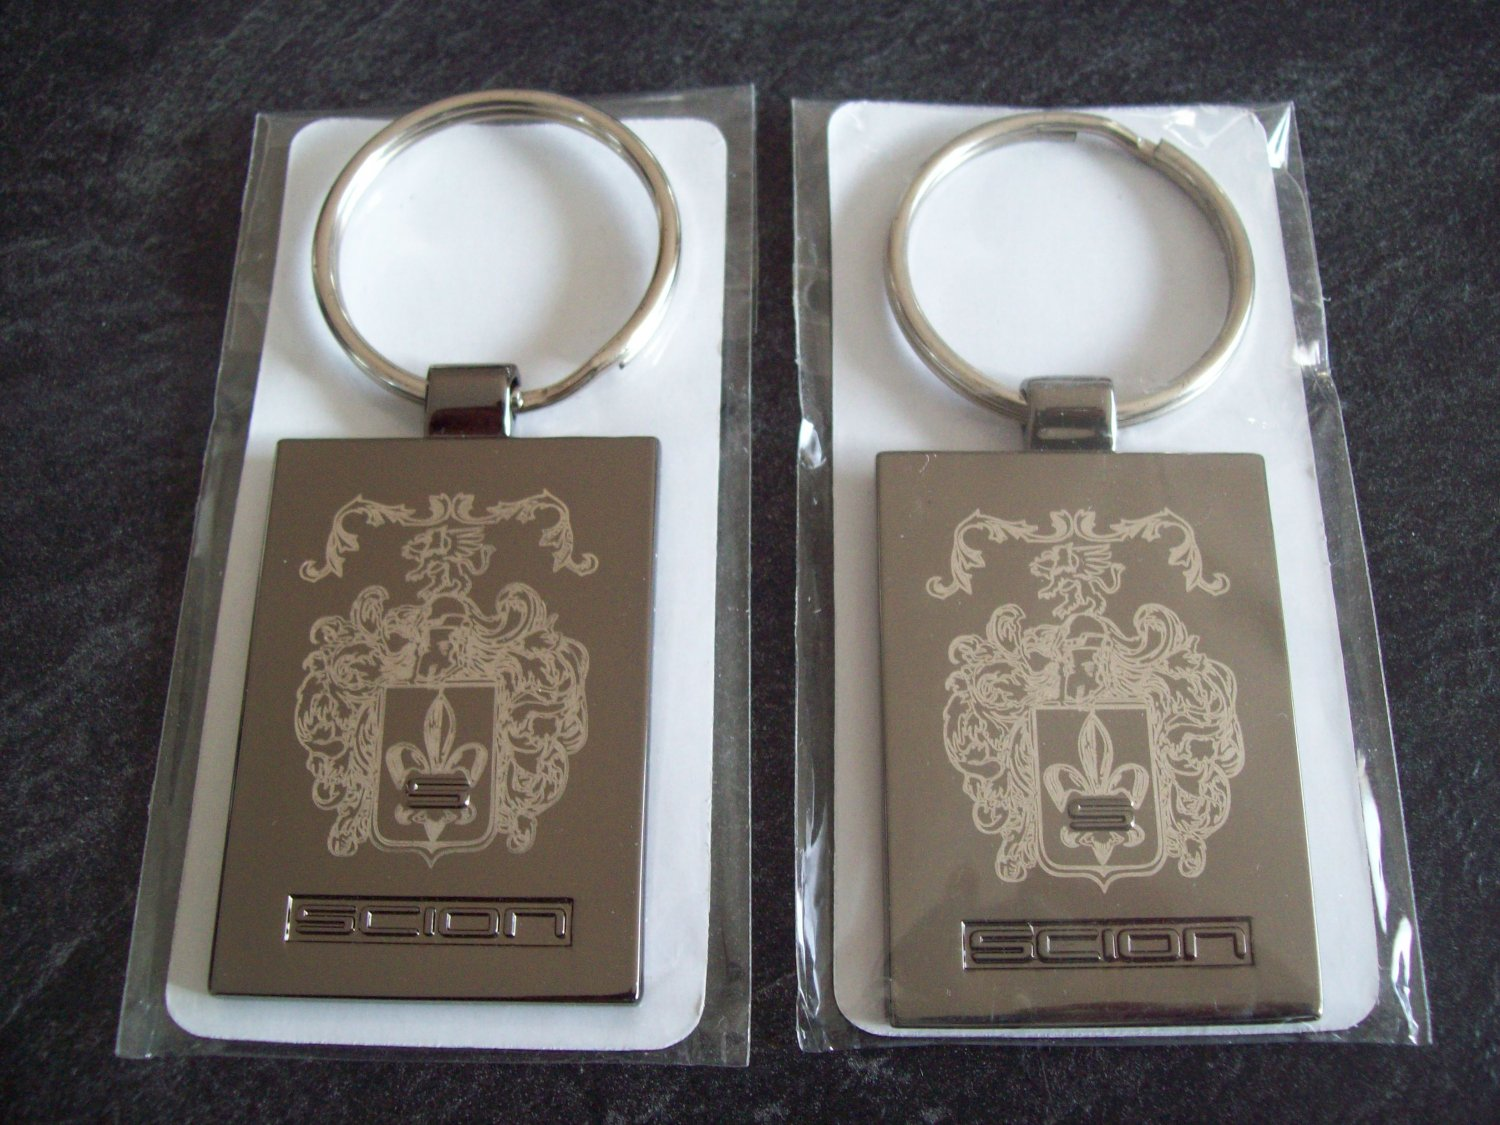 Scion key rings